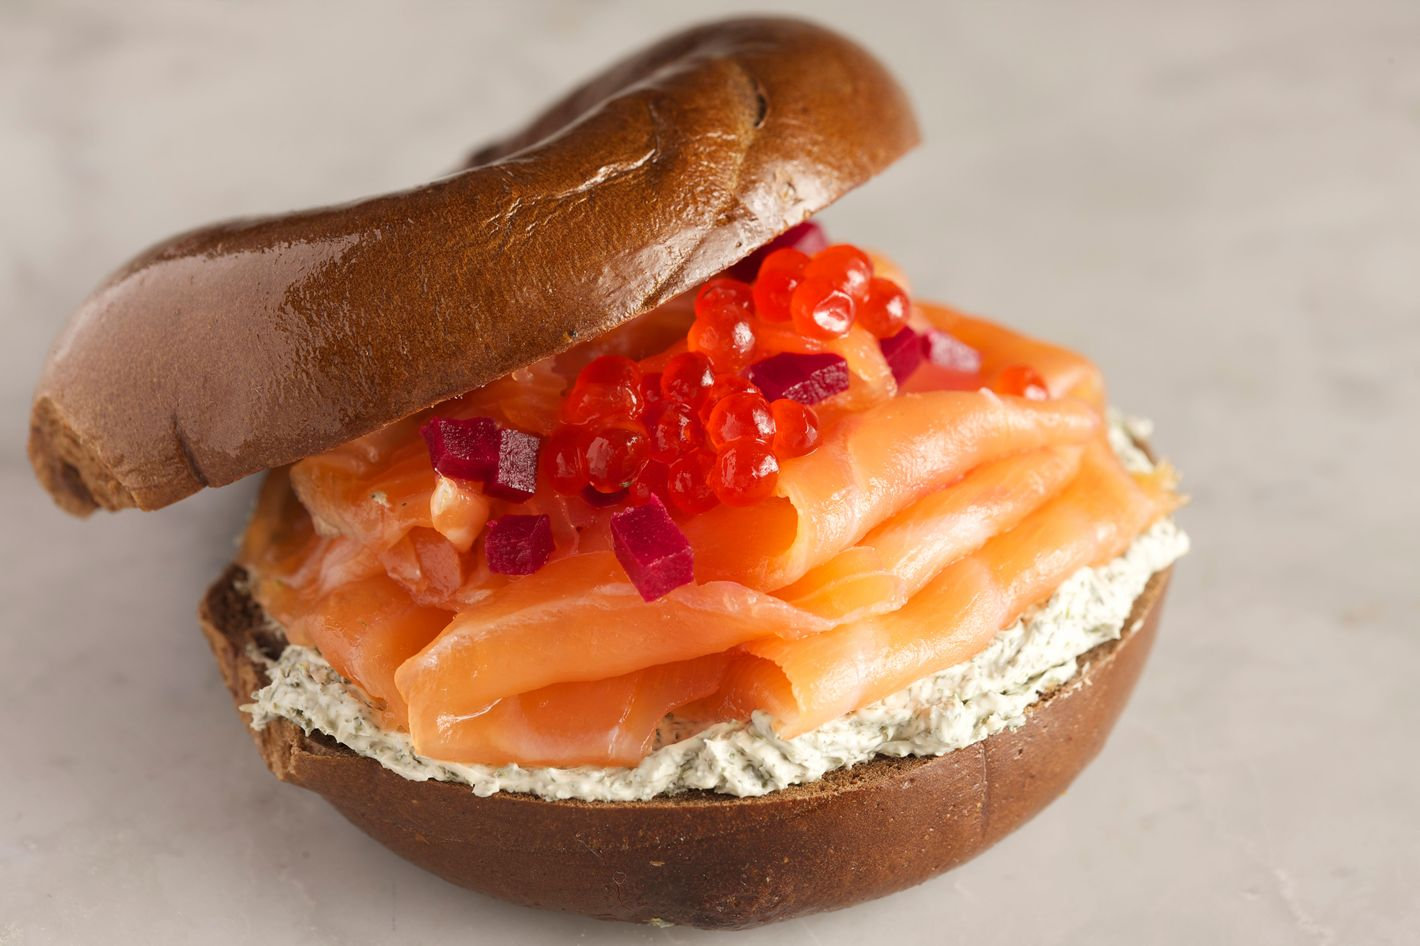 Go for the Czar: sliced nova, pickled beets, salmon roe, and parsley-dill cream cheese on a pumpernickel bagel.